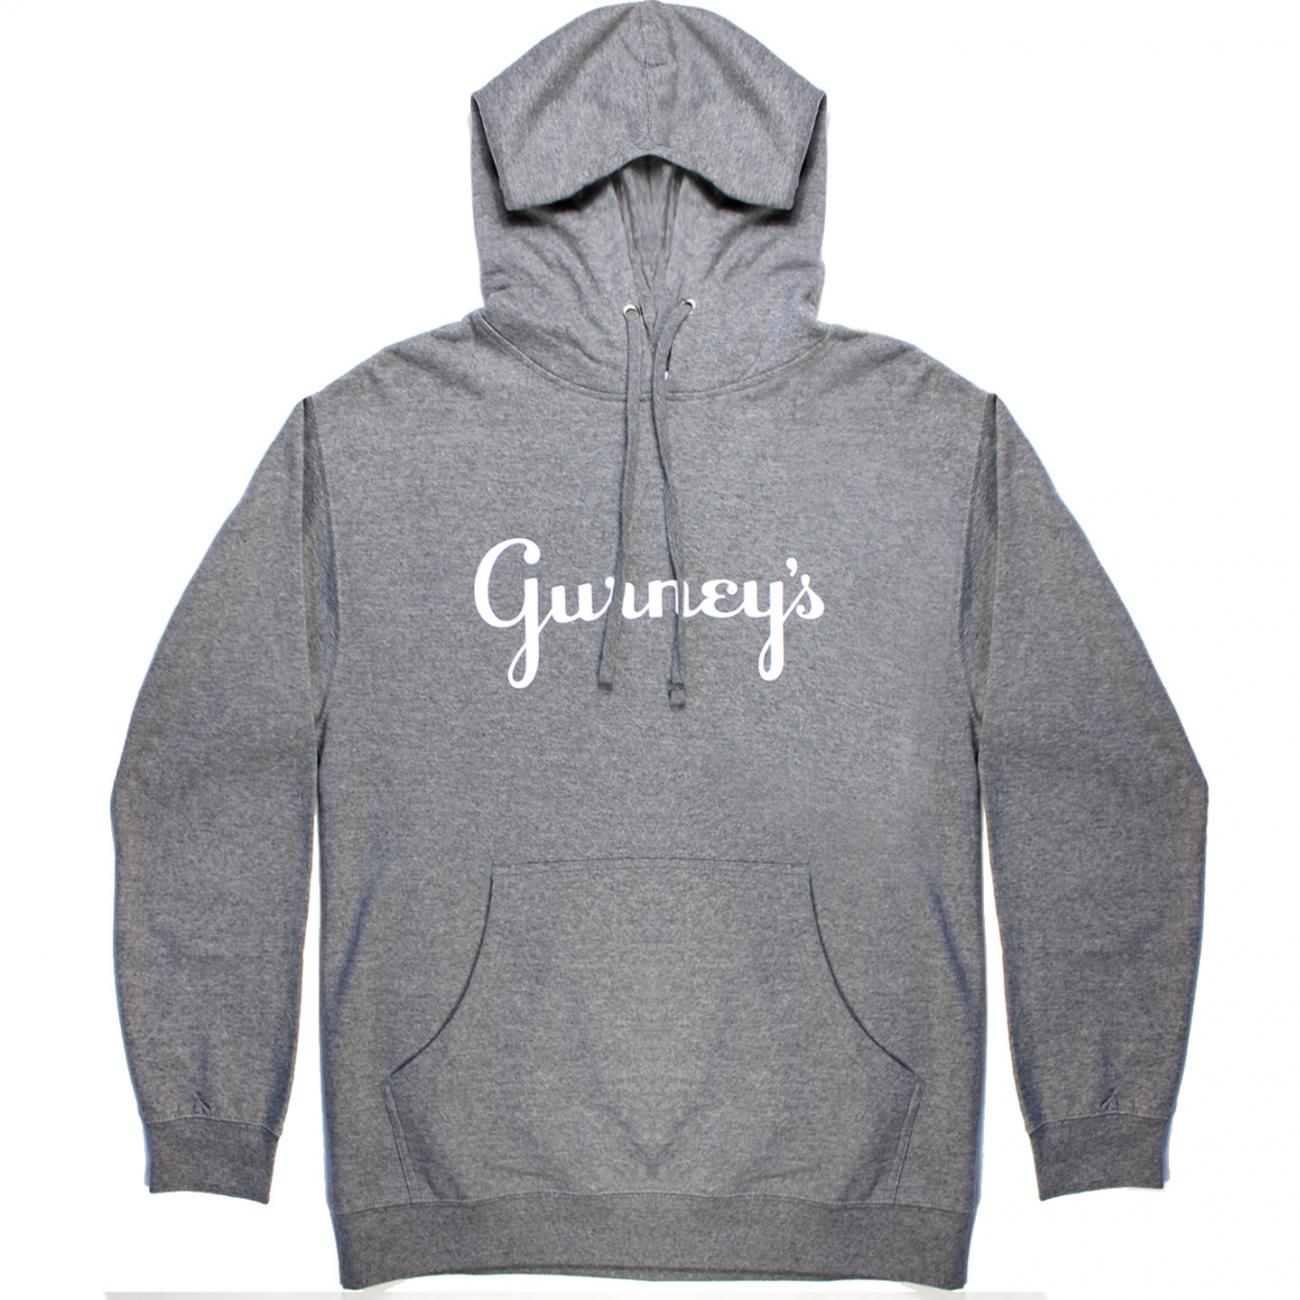 Gurney's Hoodie screened across chest front charcoal